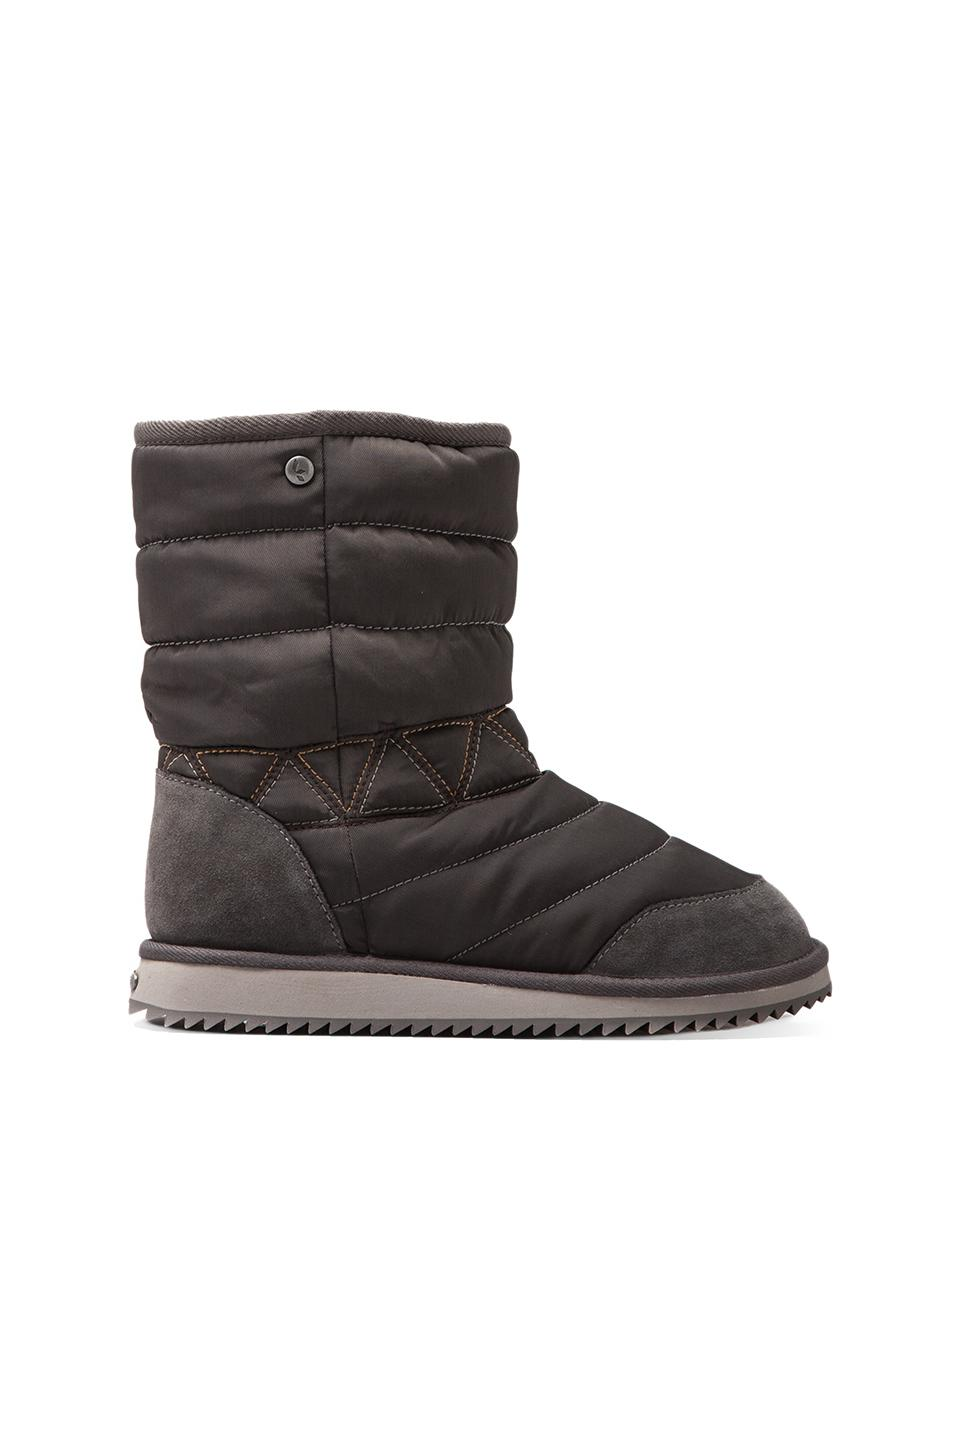 Koolaburra Moondance Boot with Sheep Wool in Armor Nylon